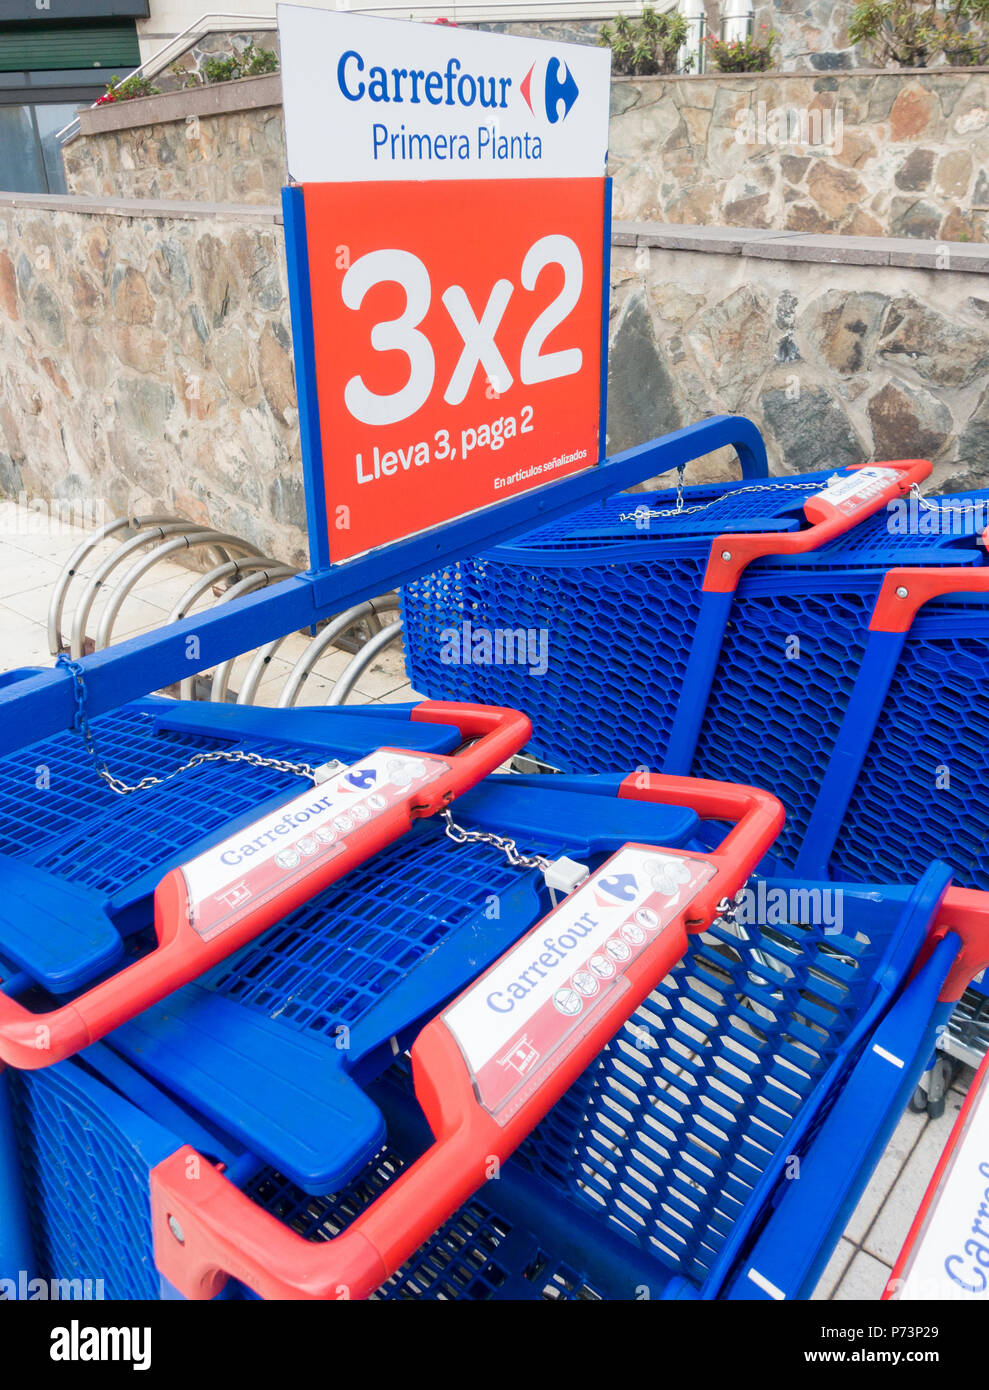 Carrefour online shopping spain